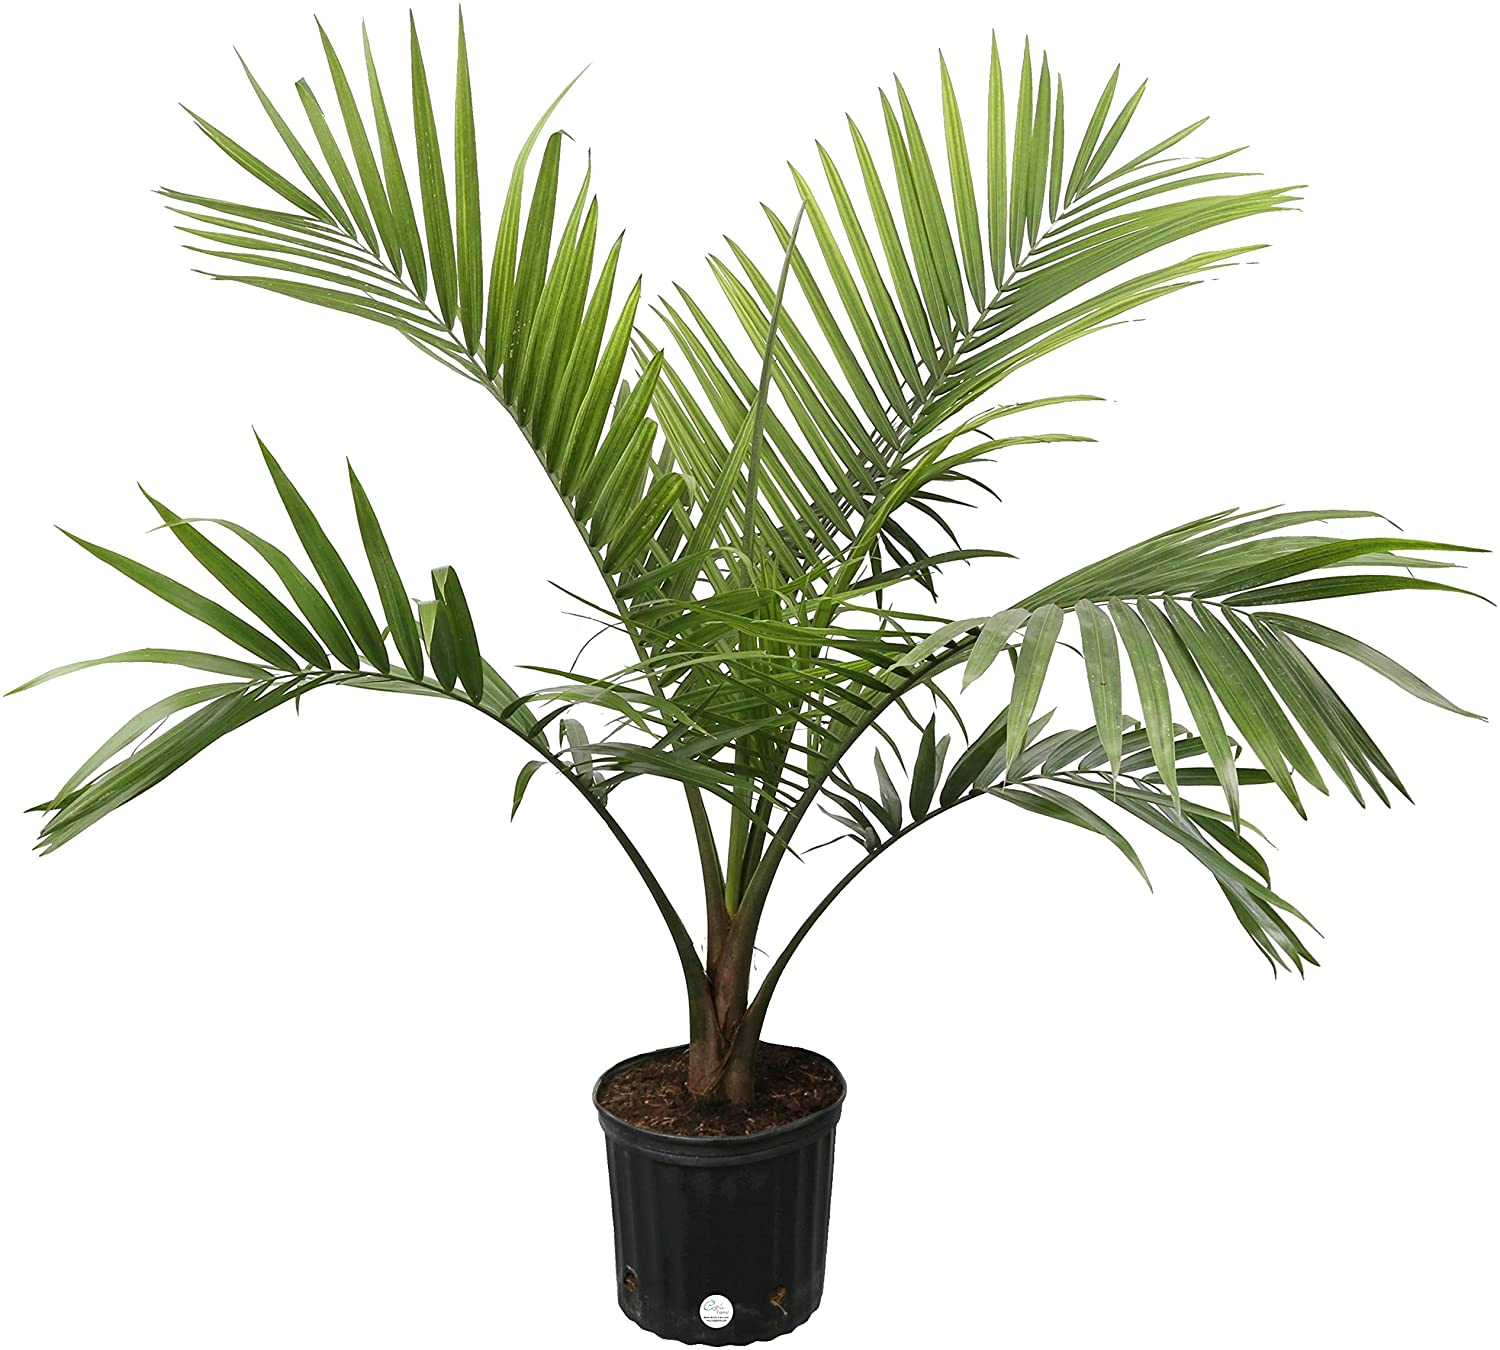 Costa Farms Majesty Palm Tree, Live Indoor Plant, 3 to 4-Feet Tall, on